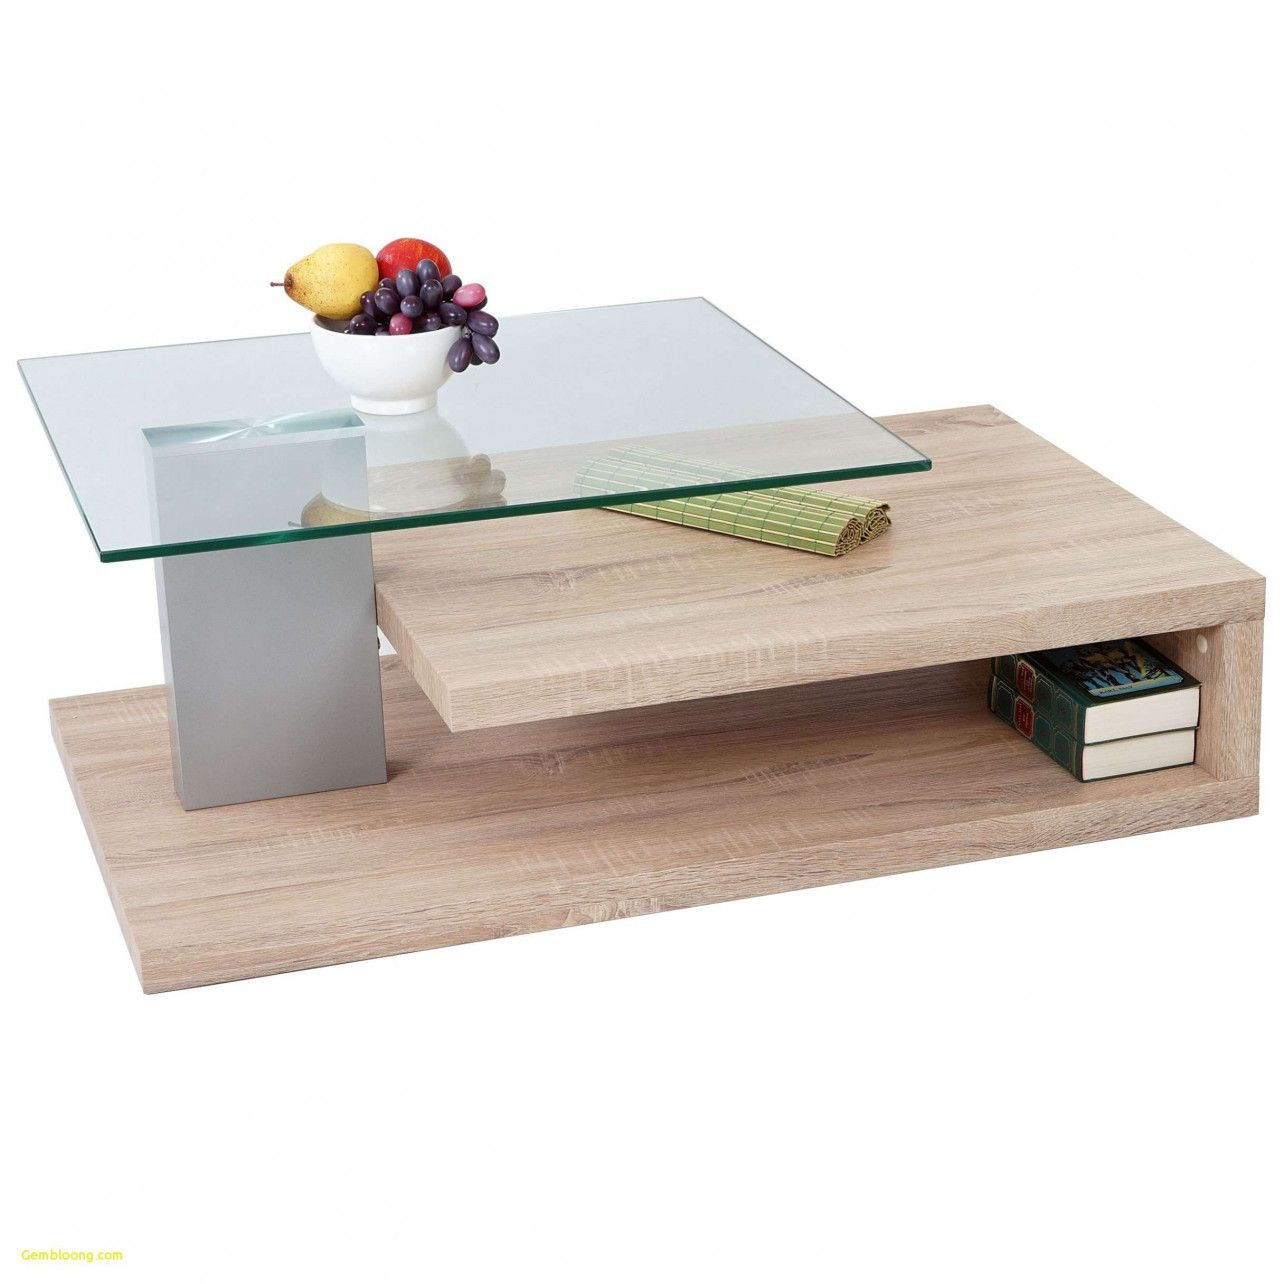 201 Best Of Ikea Lift Top Coffee Table 2020 Coffee Table Wood Coffee Table Acrylic Coffee Table